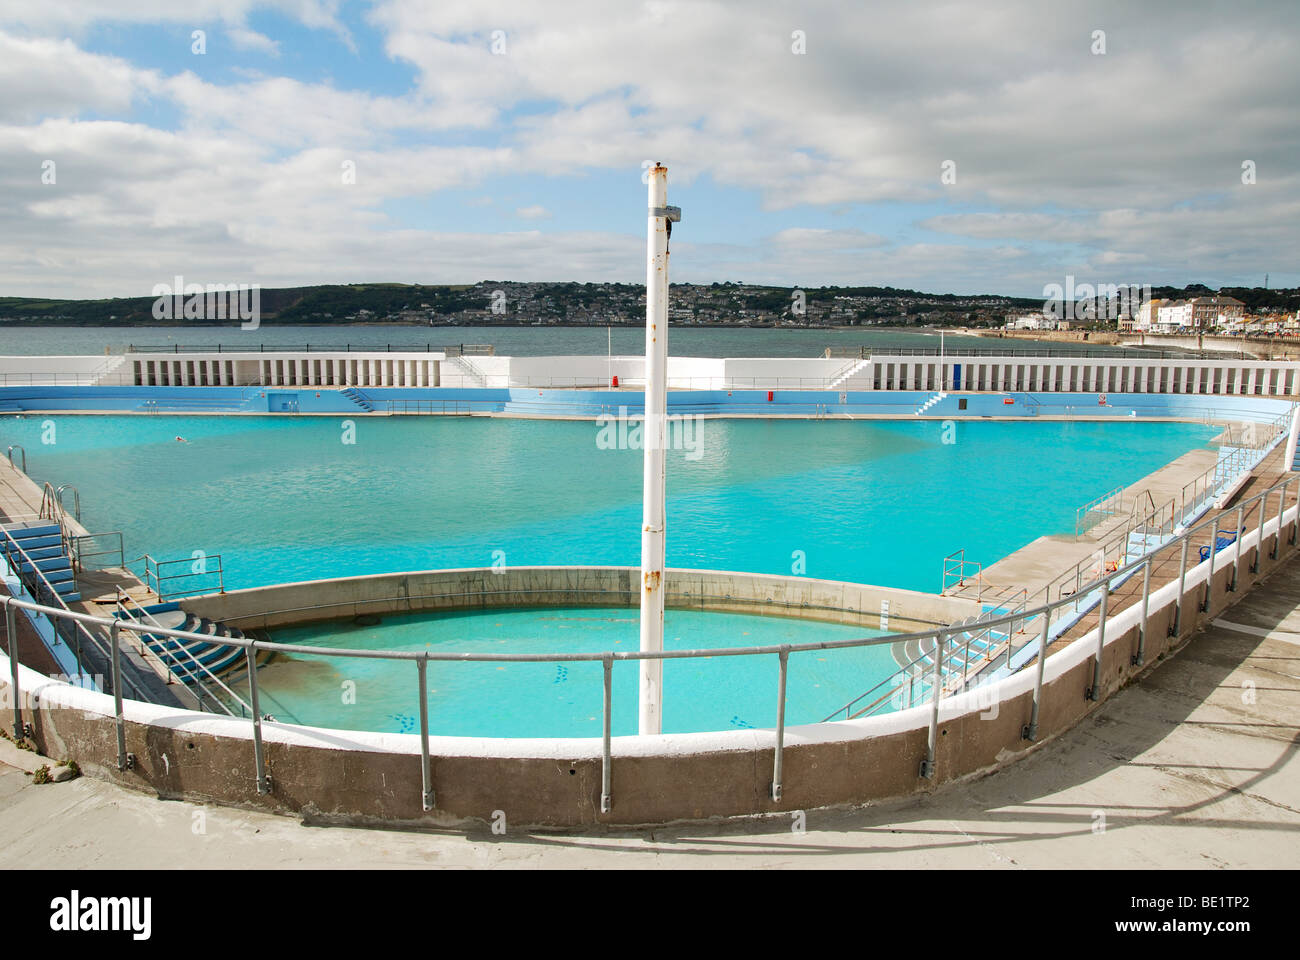 The Open Air Jubilee Swimming Pool On The Seafront At Penzance In Stock Photo 25856938 Alamy